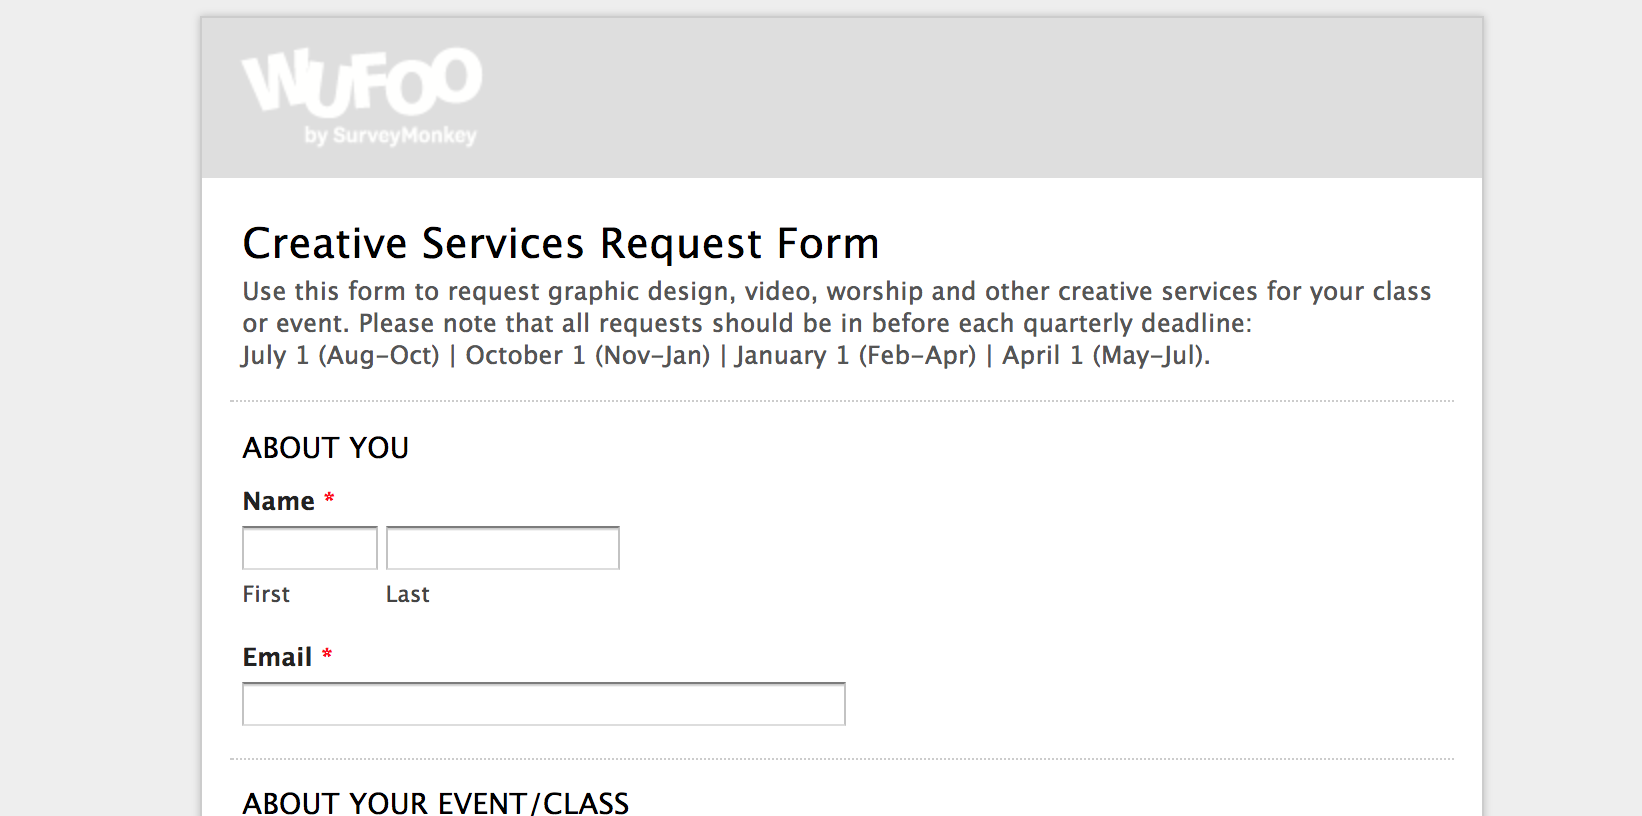 Creative Services Request Form